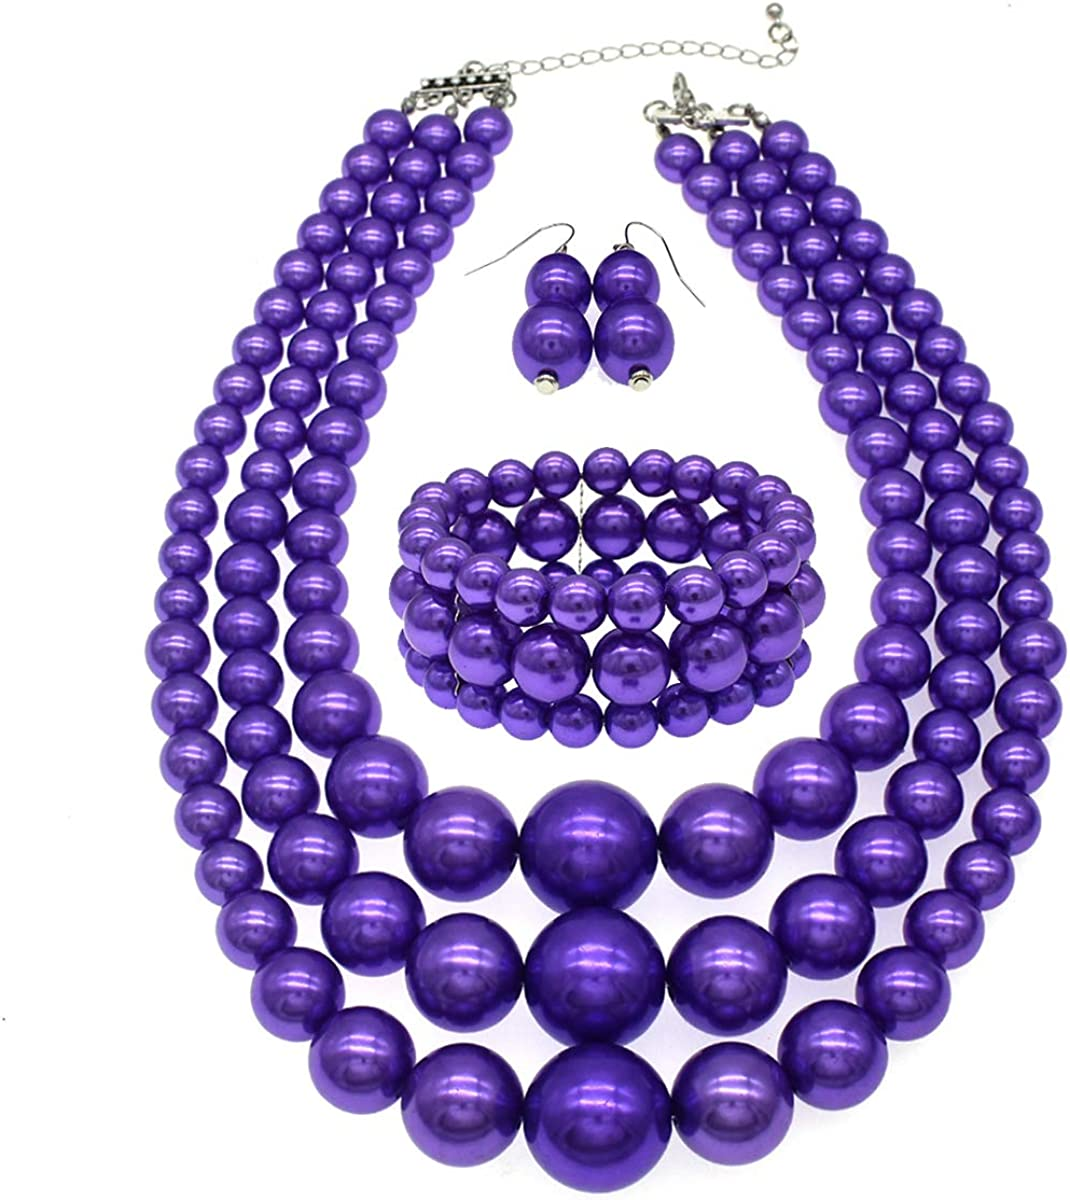 JNF Large Pearl Necklace Set Multi Layer Pearl Strand Costume Jewelry Sets Pearl Statement Necklace Bracelet and Earrings for Women (Fushcia)